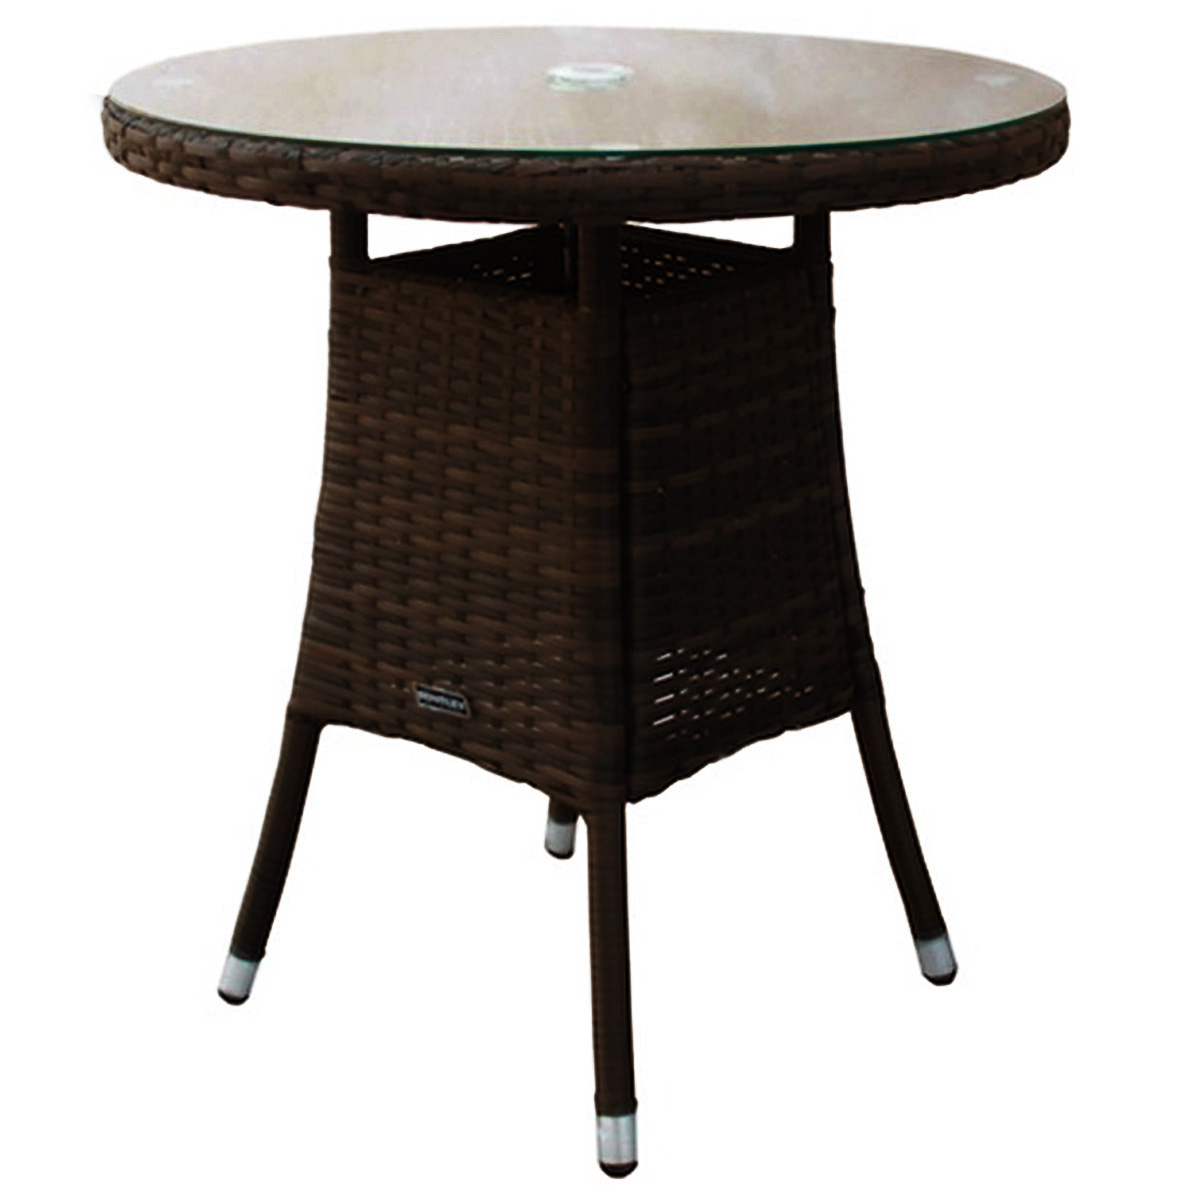 Indoor Outdoor Small Round Rattan Dining Table Brown Black EBay